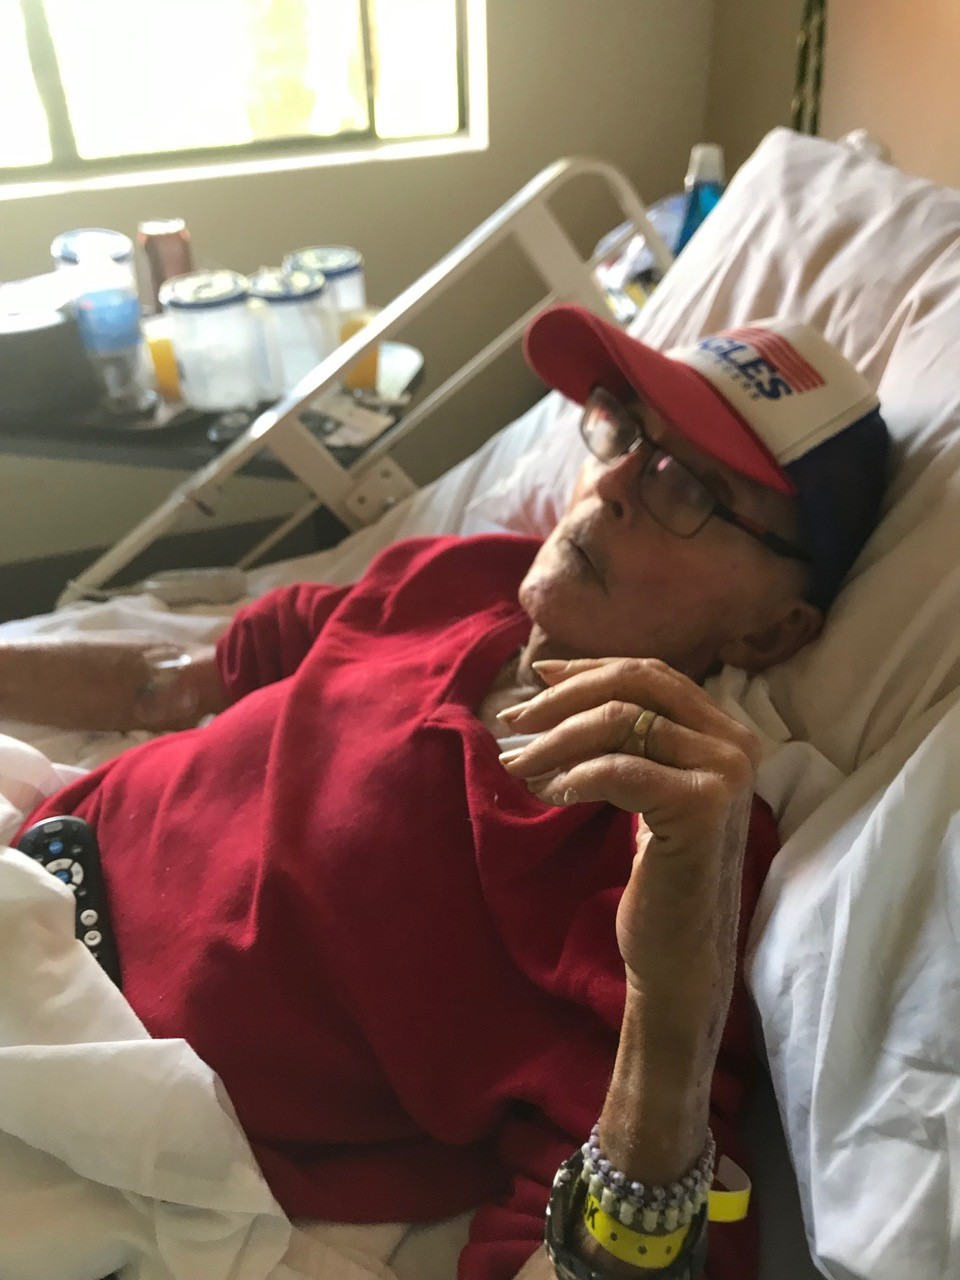 An Update on our Friend, Les